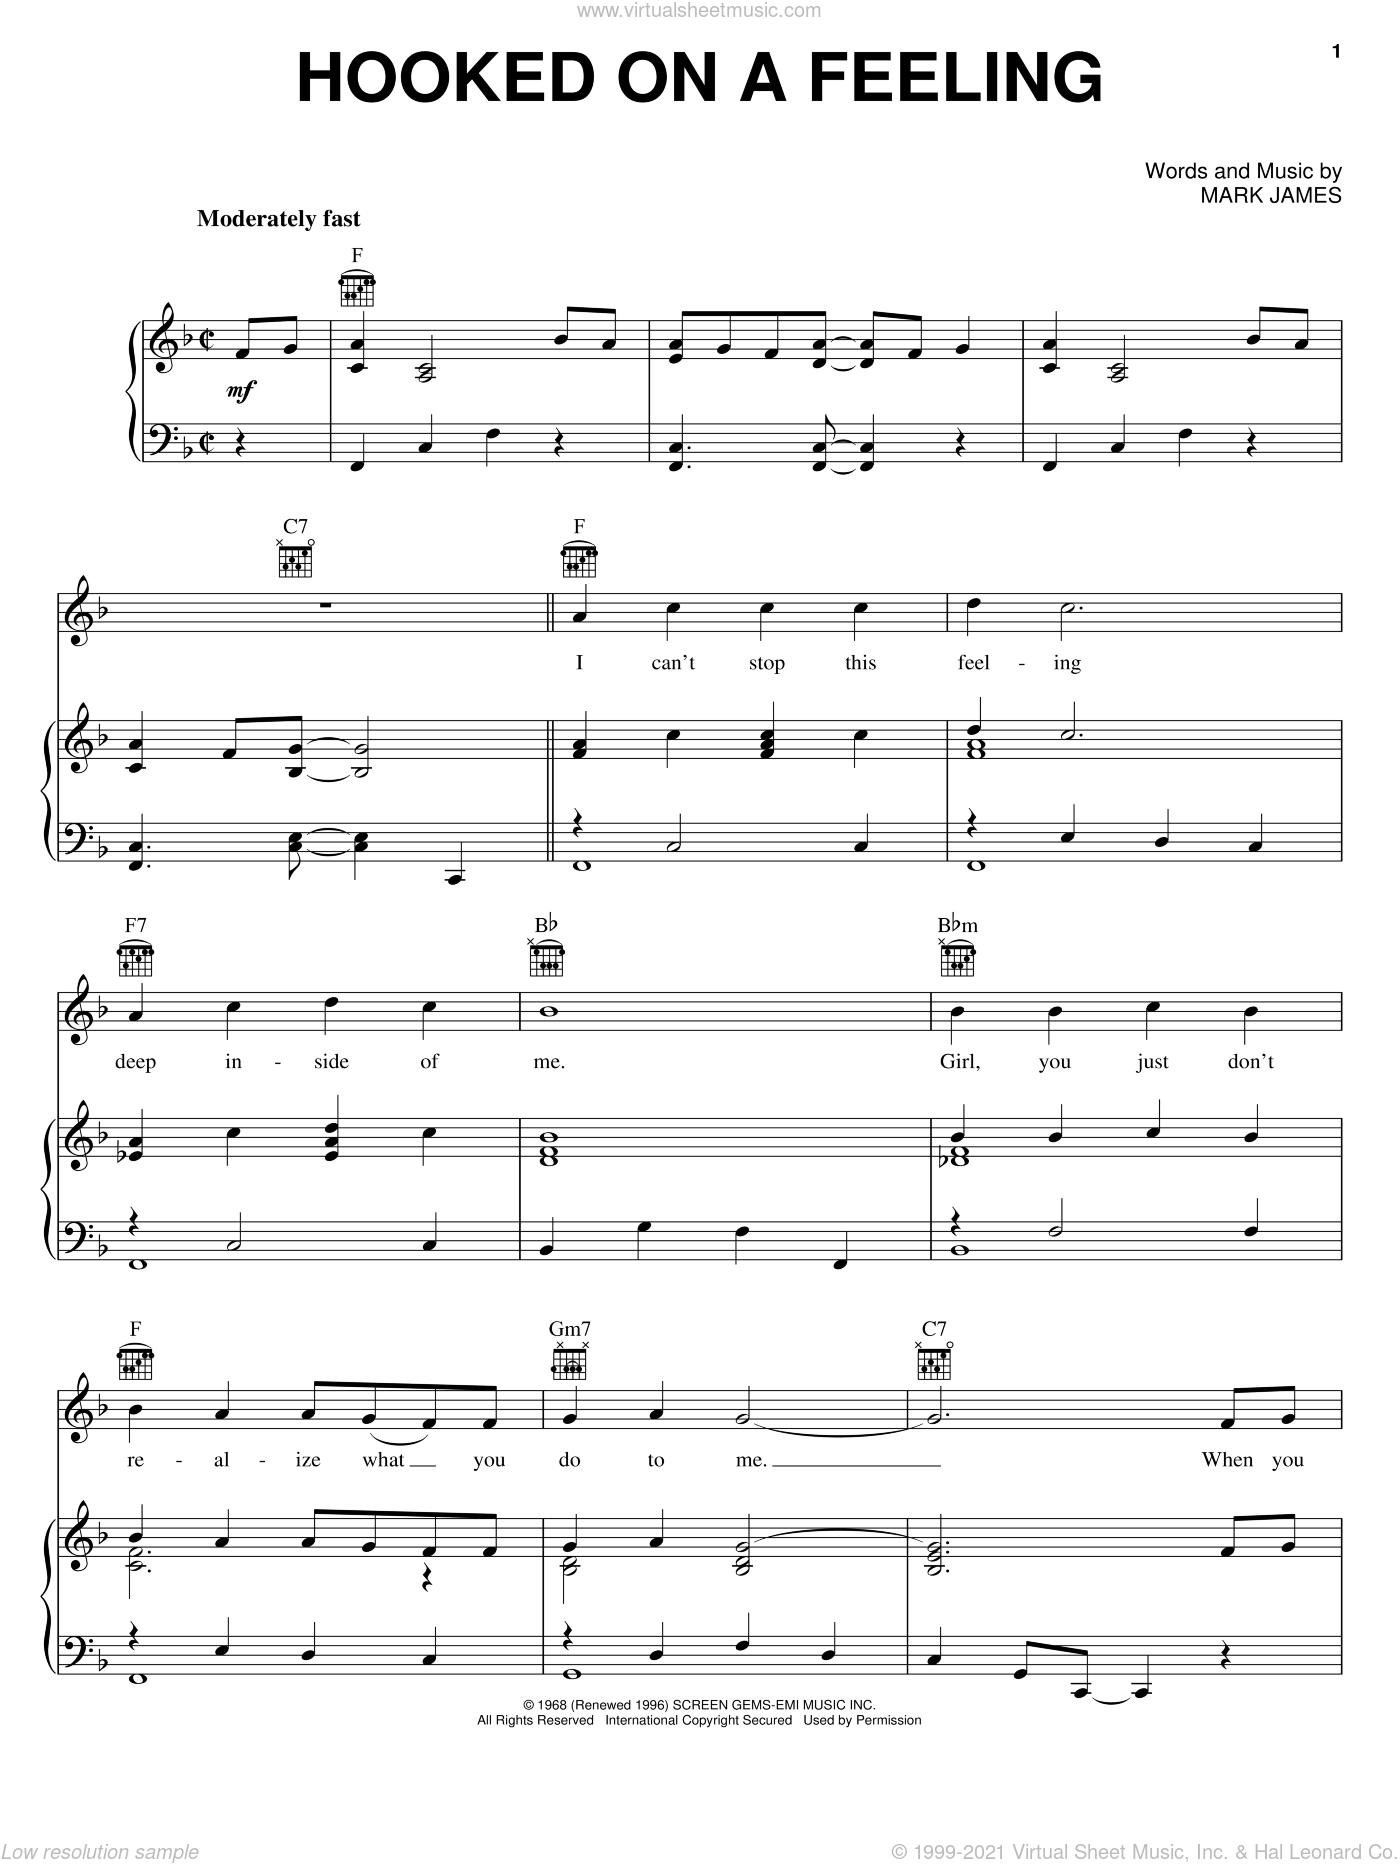 Hooked On A Feeling sheet music for voice, piano or guitar by B.J. Thomas and Mark James, intermediate skill level